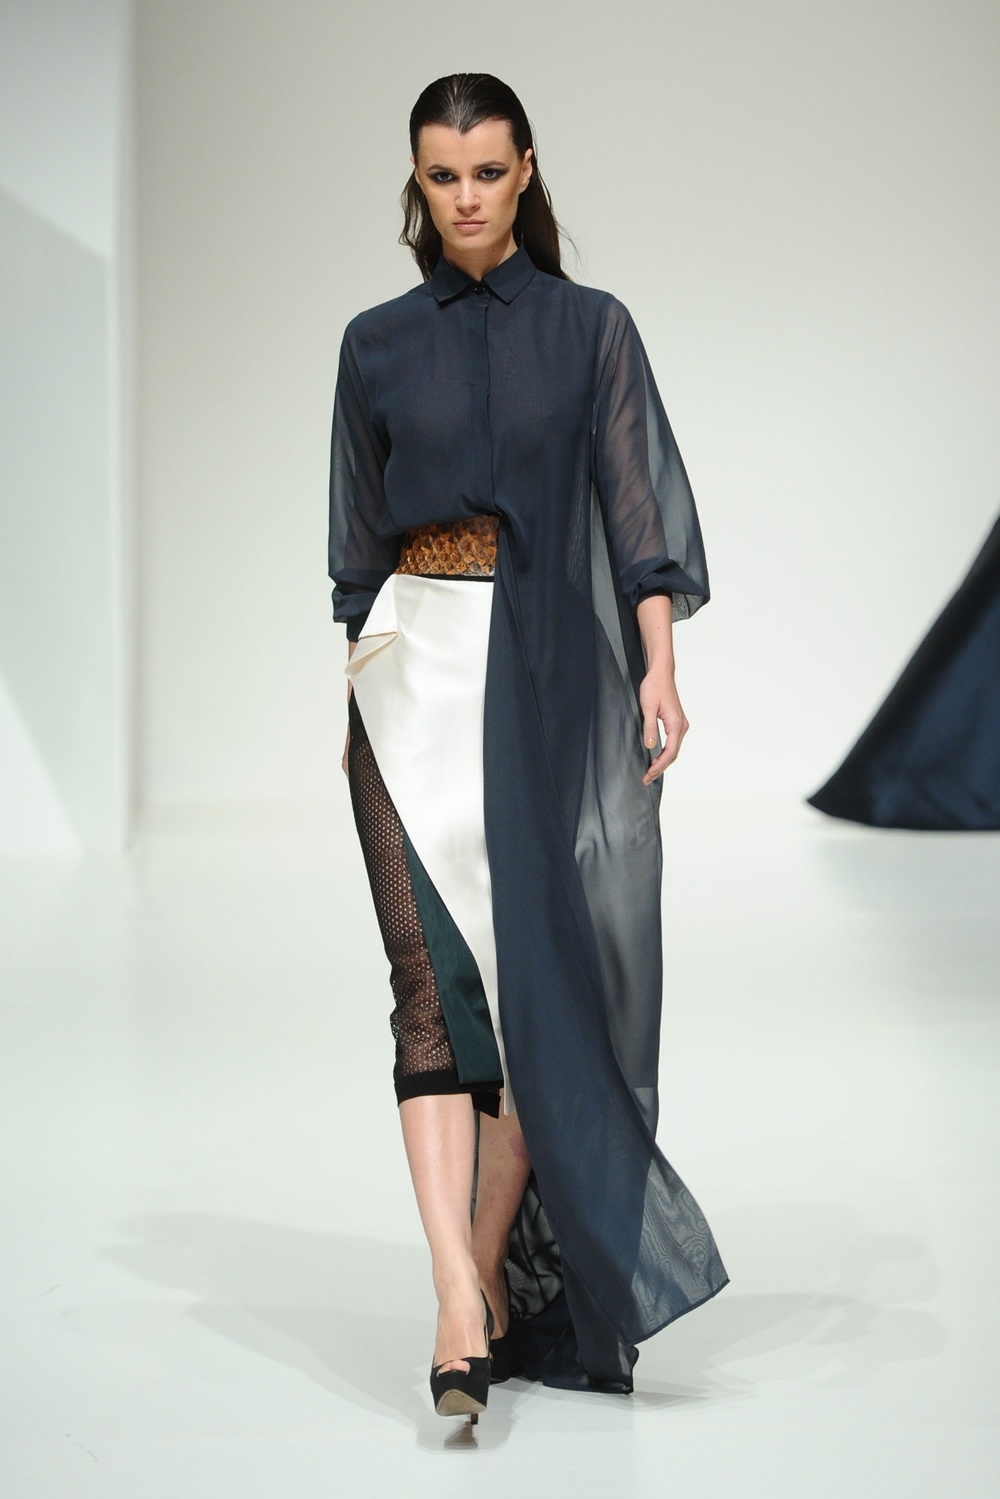 Hussein Bazaza at Fashion Forward Season 5. Dubai, United Arab Emirates